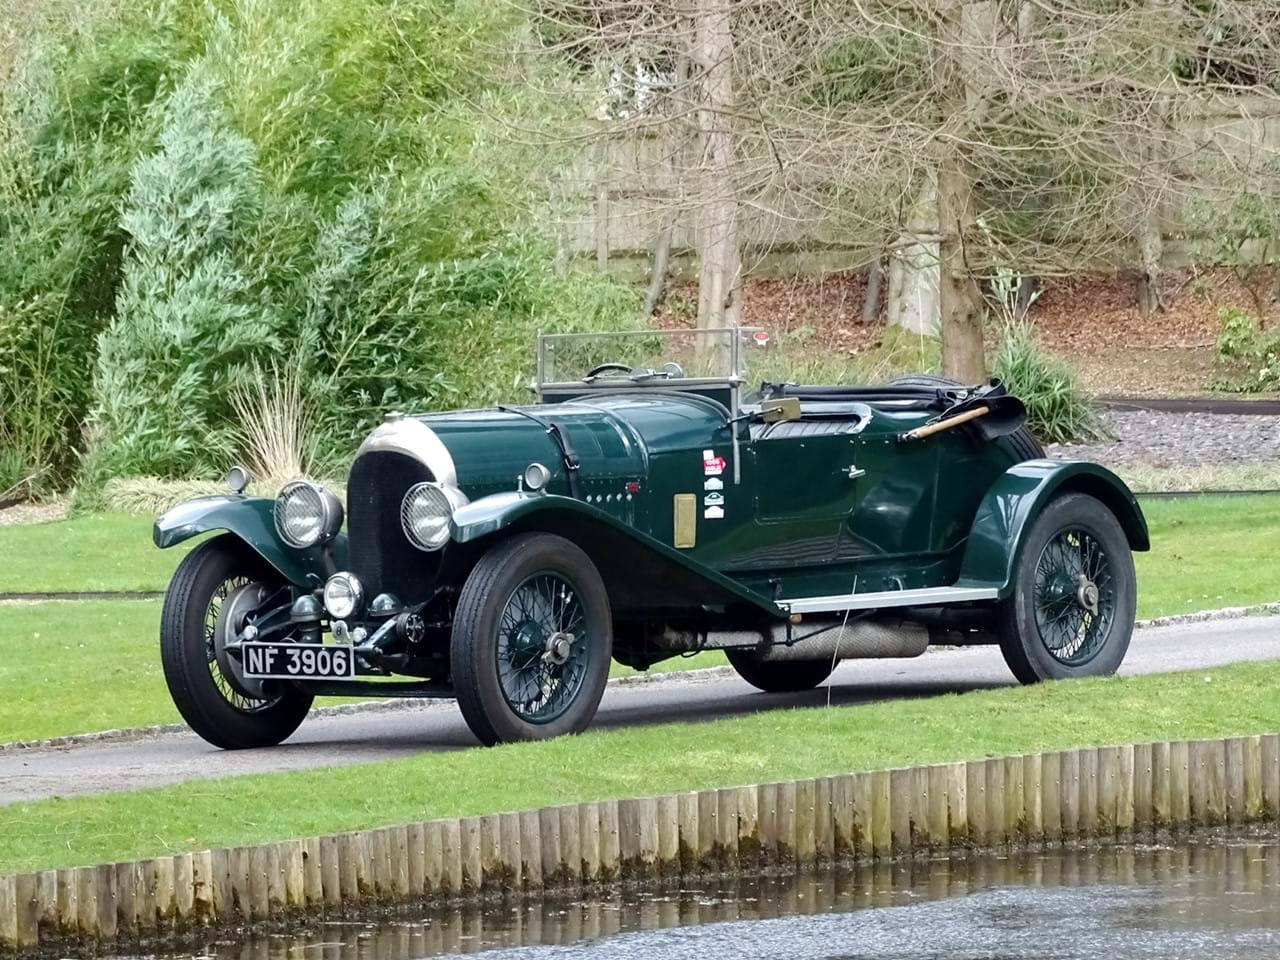 1927 Bentley 3/4.5 Litre Tourer For Sale (picture 1 of 6)